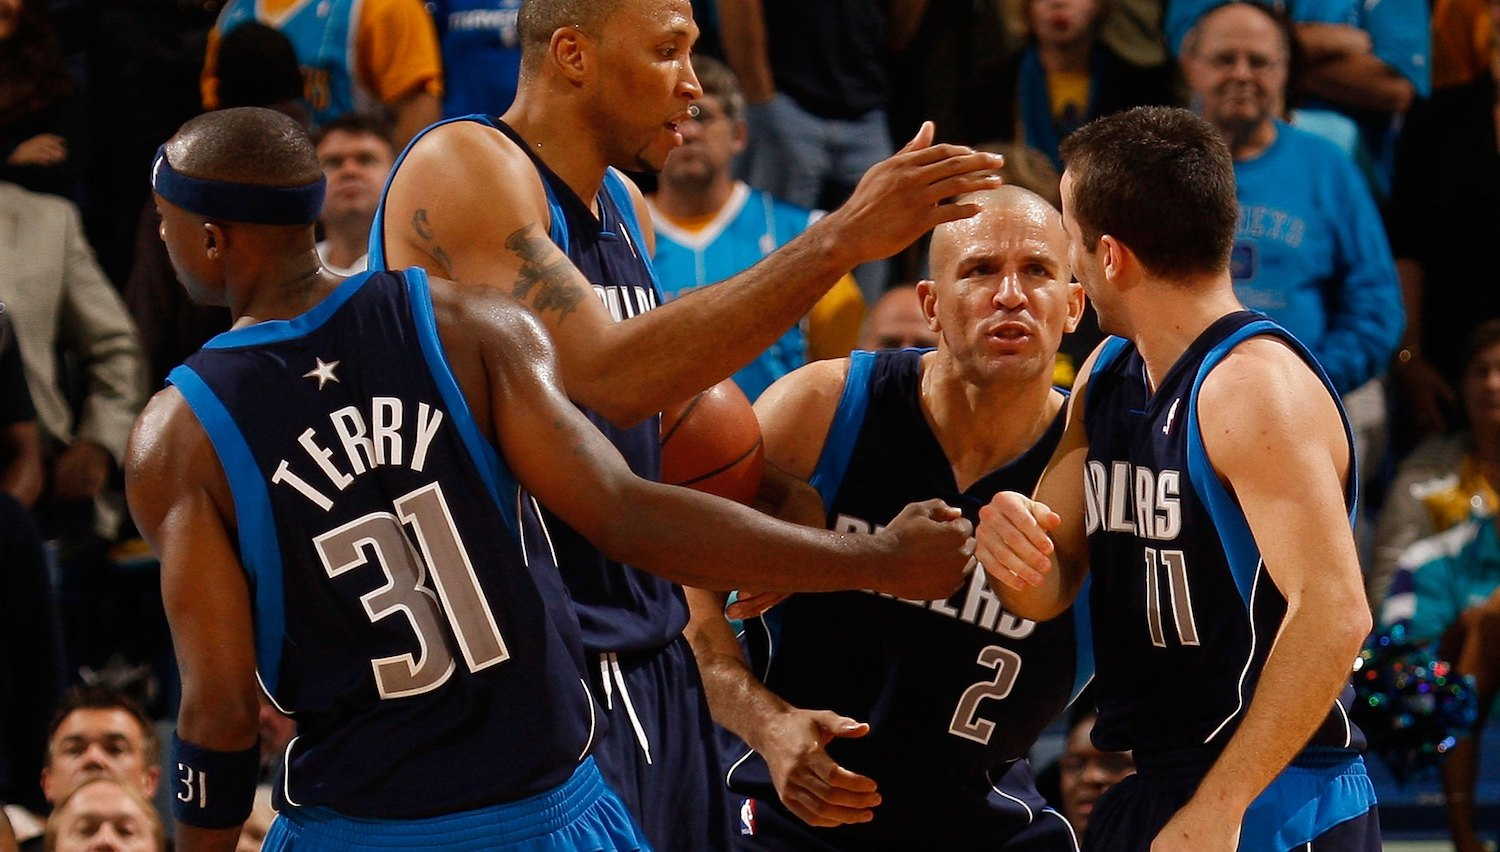 NEW ORLEANS - NOVEMBER 04: Jason Terry #31, Shawn Marion #0, Jason Kidd #2 congratulate Jose Barea #11 of the Dallas Mavericks during the game against the New Orleans Hornets at New Orleans Arena on November 4, 2009 in New Orleans, Louisiana. NOTE TO USER: User expressly acknowledges and agrees that, by downloading and or using this photograph, User is consenting to the terms and conditions of the Getty Images License Agreement. (Photo by Chris Graythen/Getty Images)